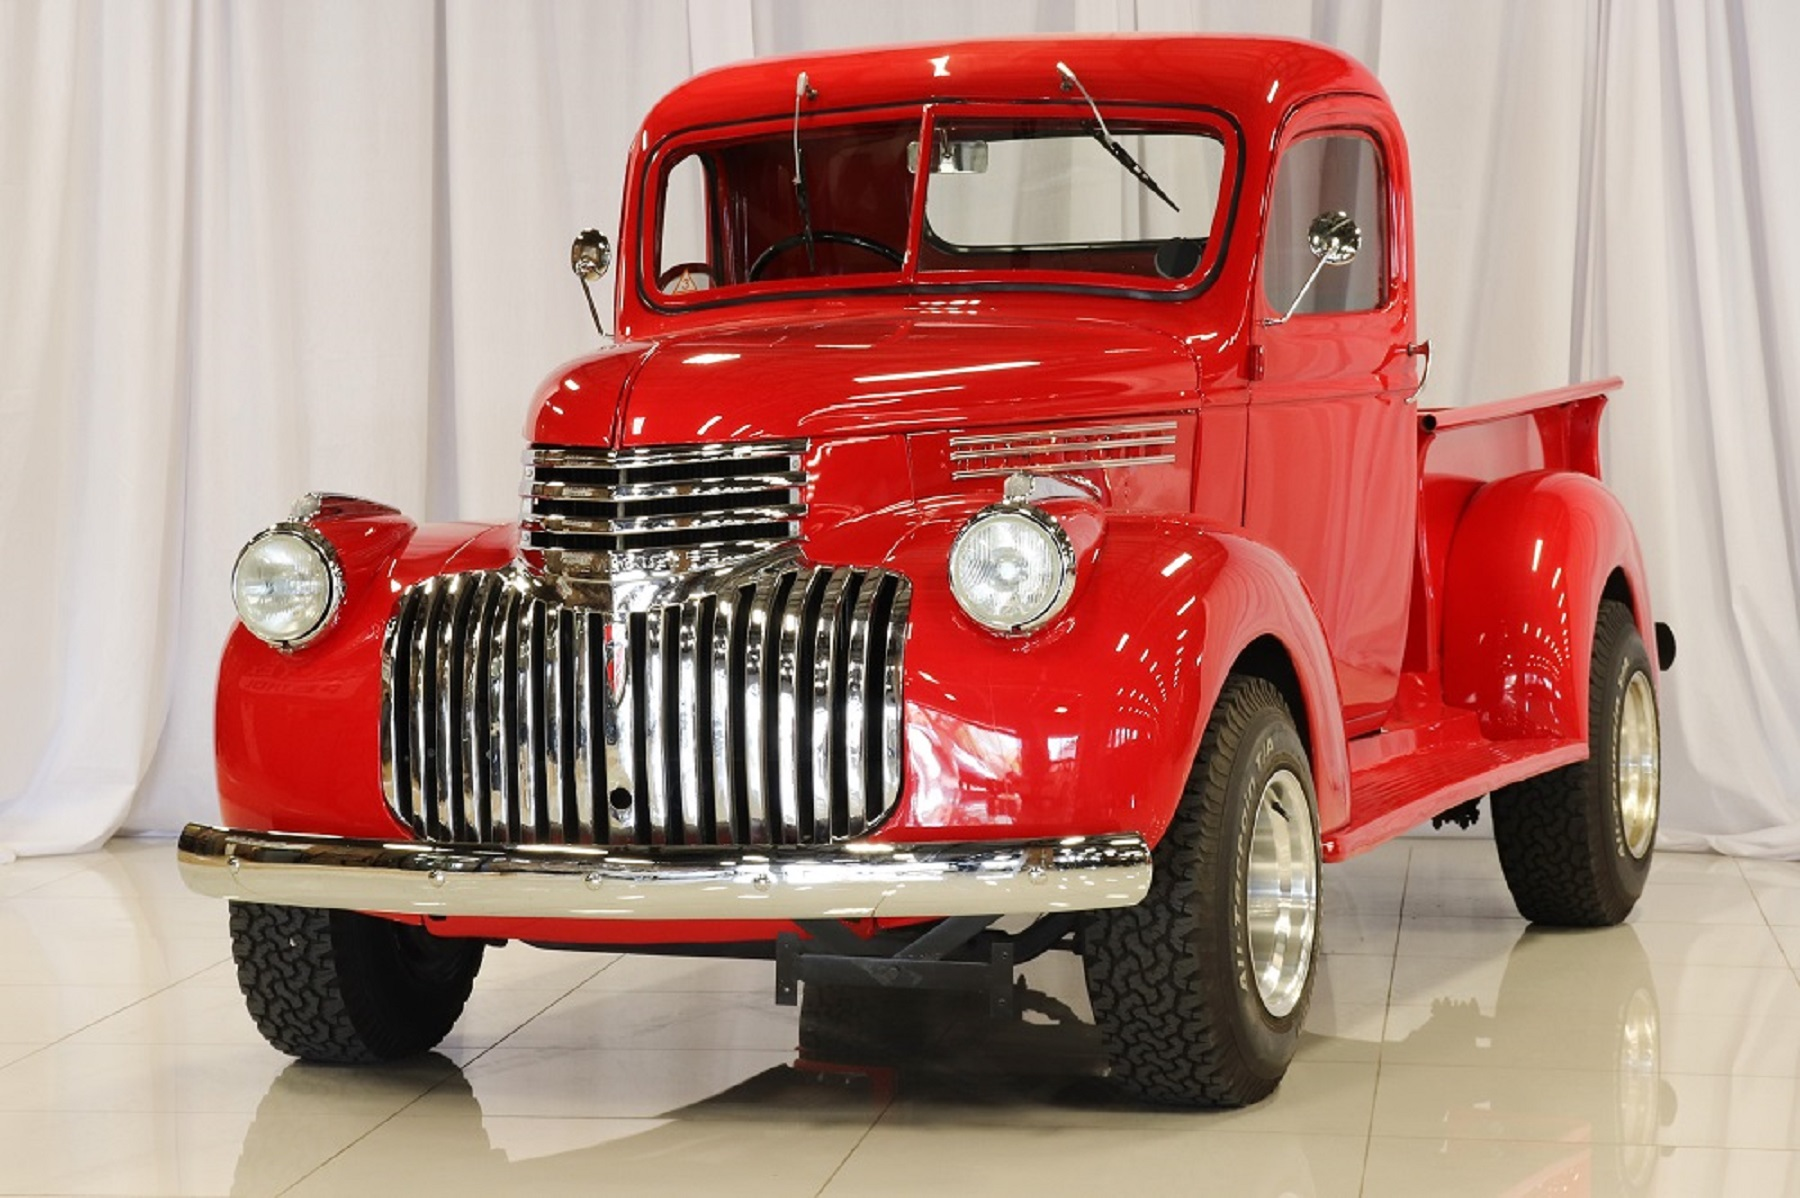 1942 Chevrolet Ck Series Pickup Truck Creative Rides HD Wallpapers Download free images and photos [musssic.tk]